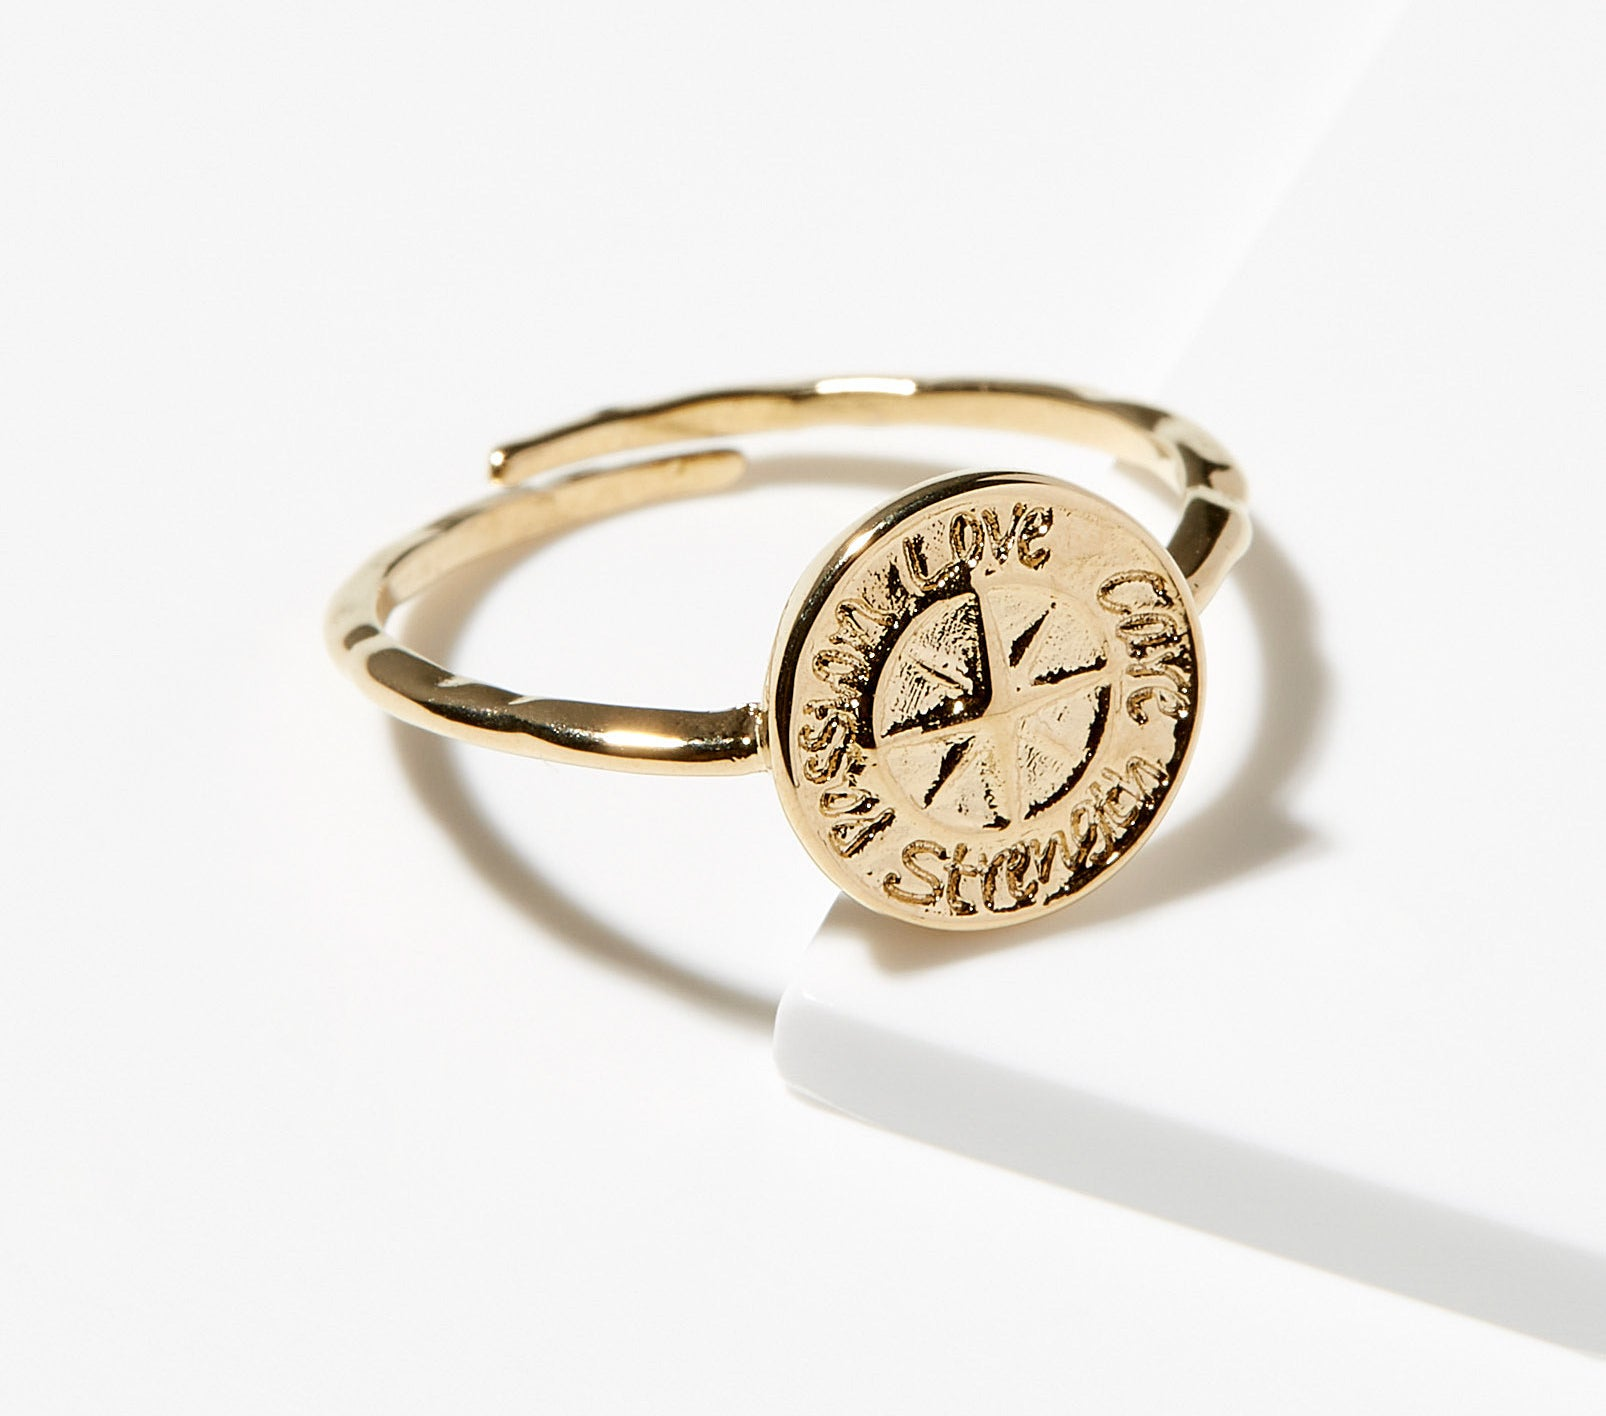 A gold ring with an engraved compass rose that have the words passion love strength care written around it